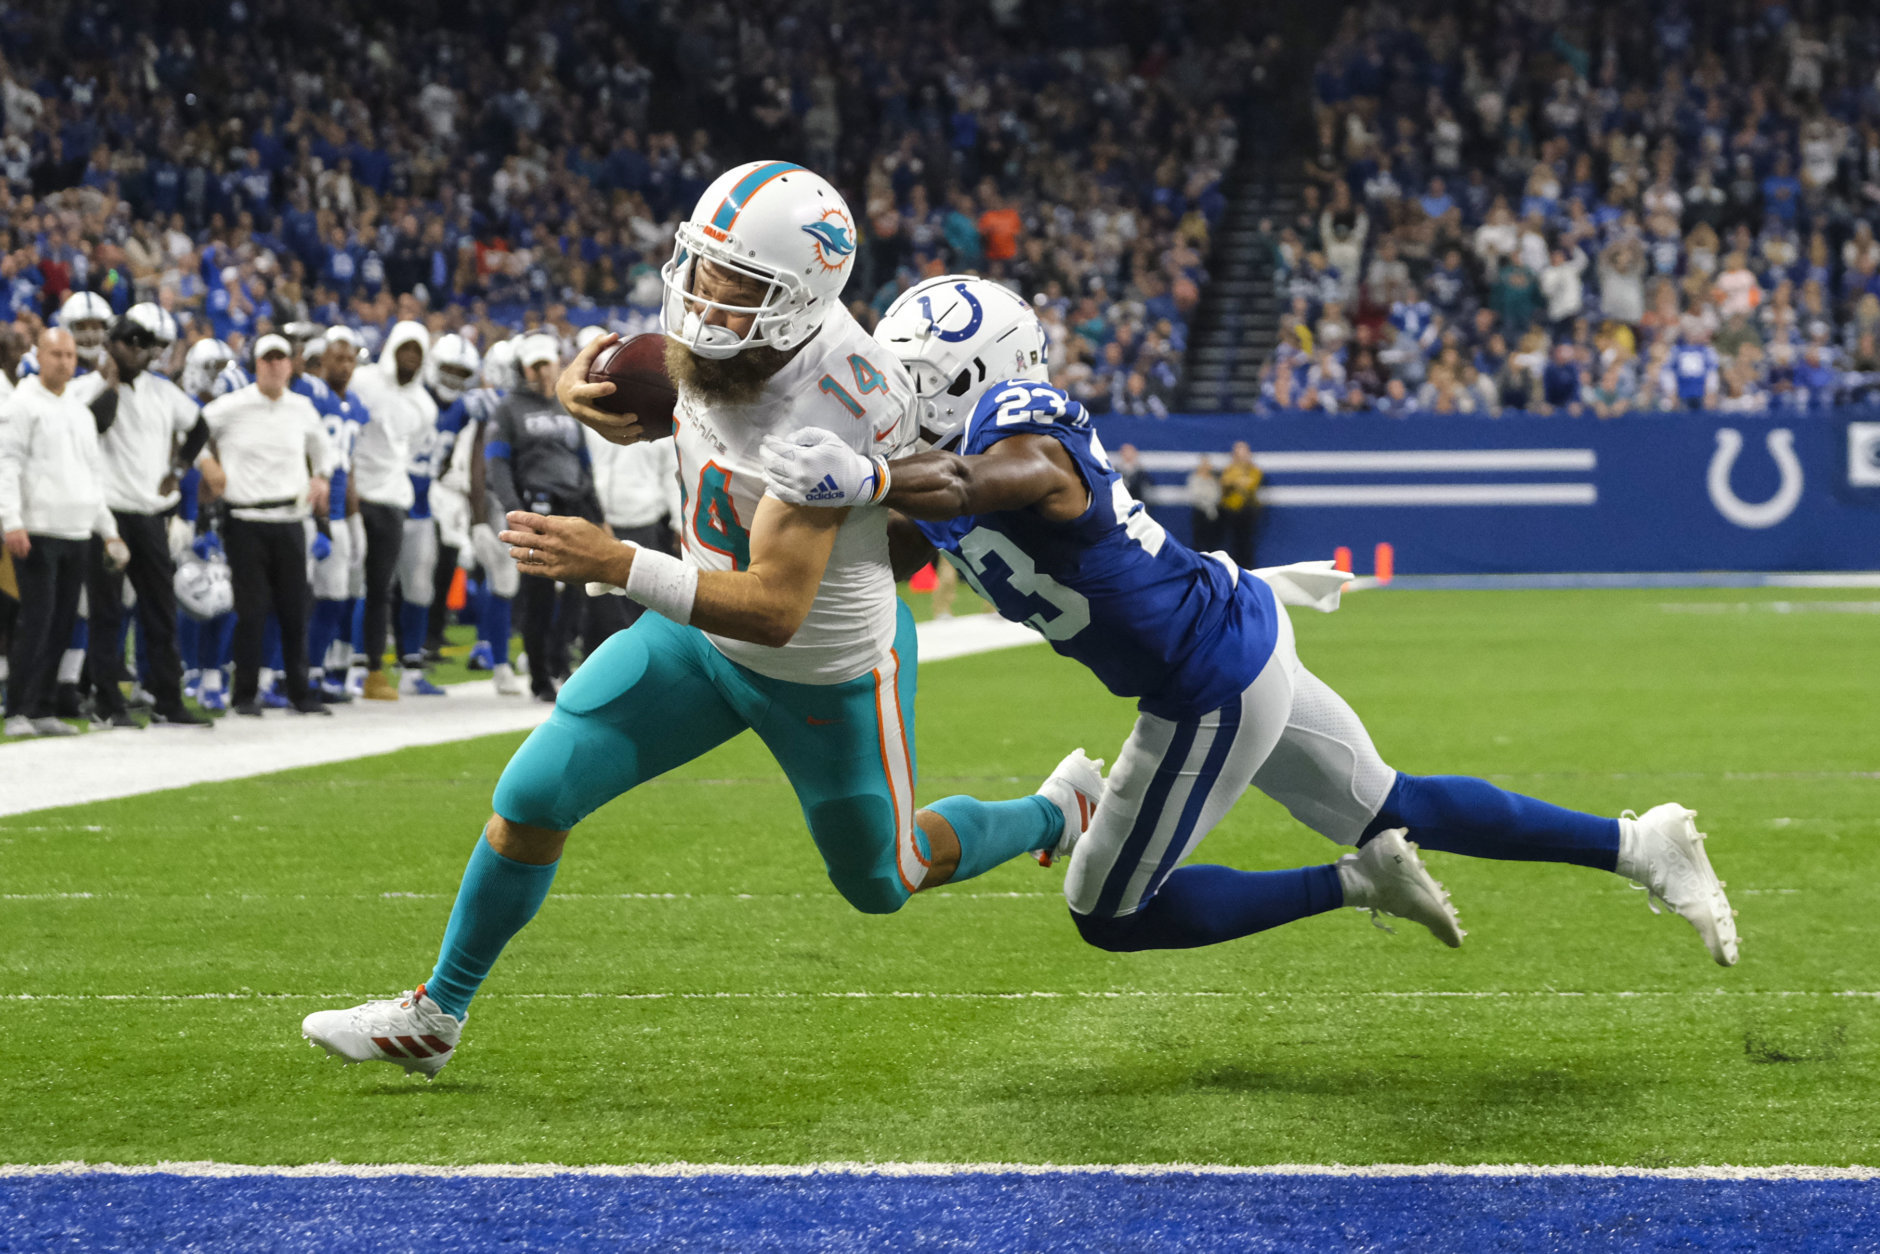 <p><b><i>Dolphins 16</i></b><br /> <b><i>Colts 12</i></b></p> <p>The lone team the Redskins have beaten this year has done something the &#8216;Skins haven&#8217;t: Won consecutive games. Given Cincinnati is still winless — on a day when the Dolphins, Jets and Falcons all won, no less — and Joe Burrow played his way into being the favorite to be picked #1 overall in the draft; Miami may get Tua without the tanking after all.</p>